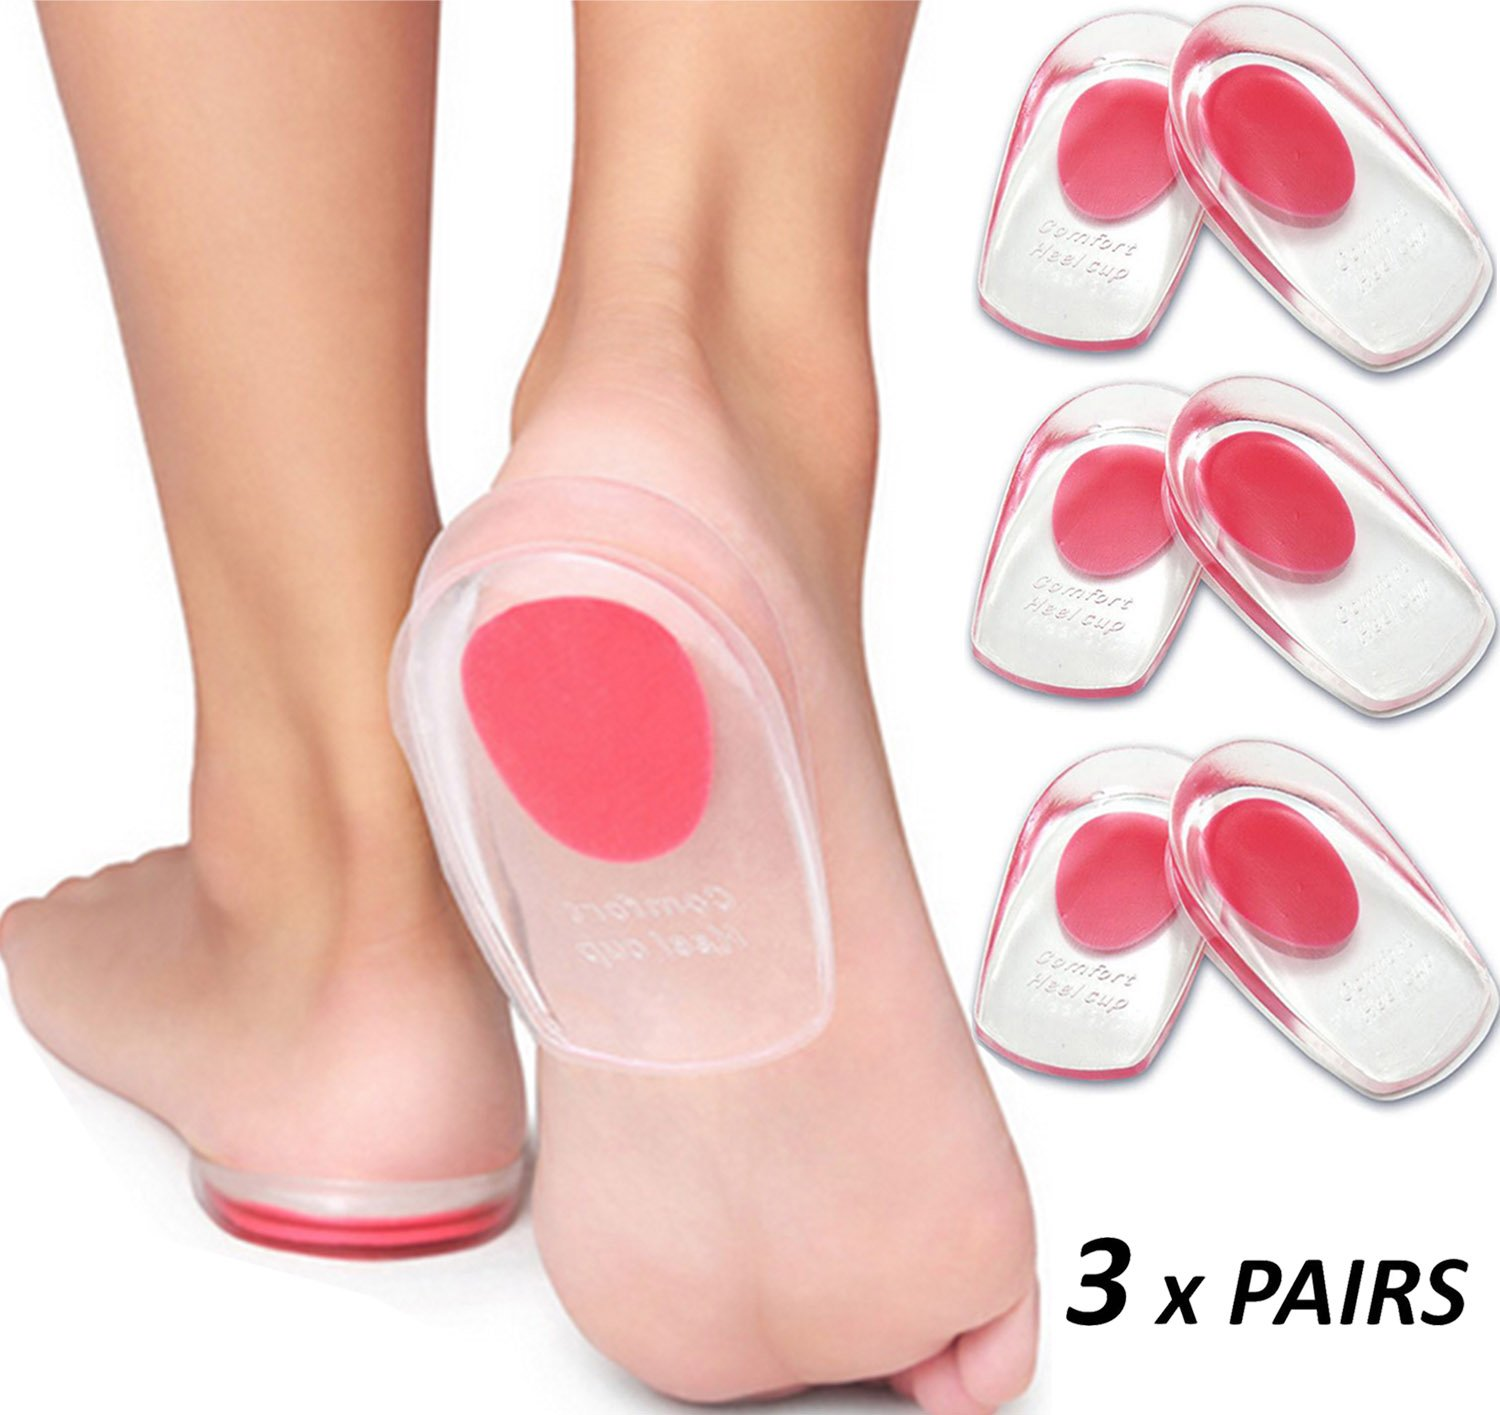 Gel Heel Cups Plantar Fasciitis Inserts - Silicone Heel Cup Pads for Bone Spurs Pain Relief Protectors of Your Sore or Bruised Feet Best Insole Gels Treatment by Armstrong Amerika (Small) by ARMSTRONG AMERIKA